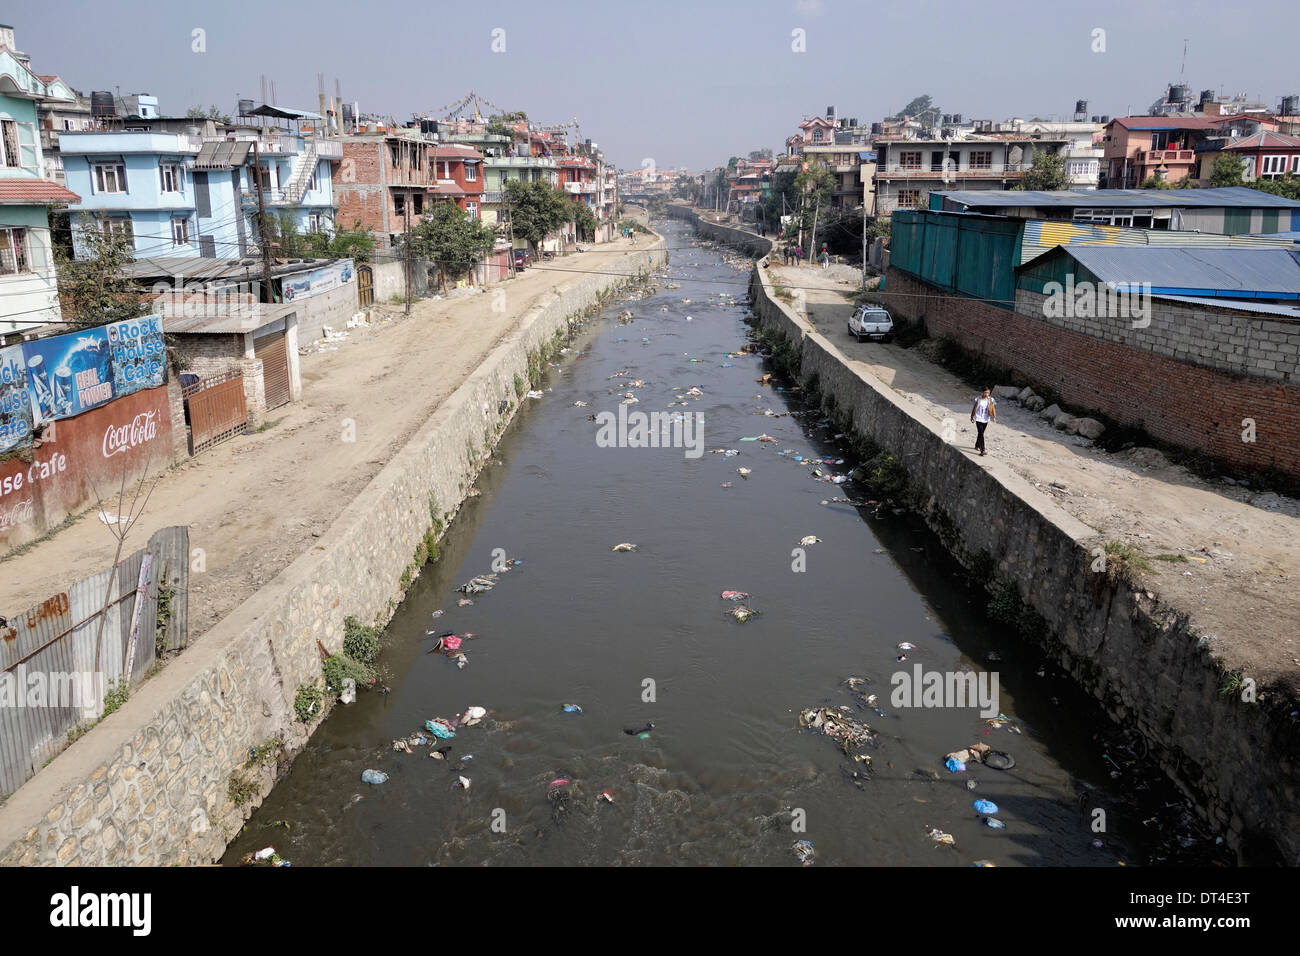 Discarded plastic litters a river in Kathmandu, Nepal. - Stock Image